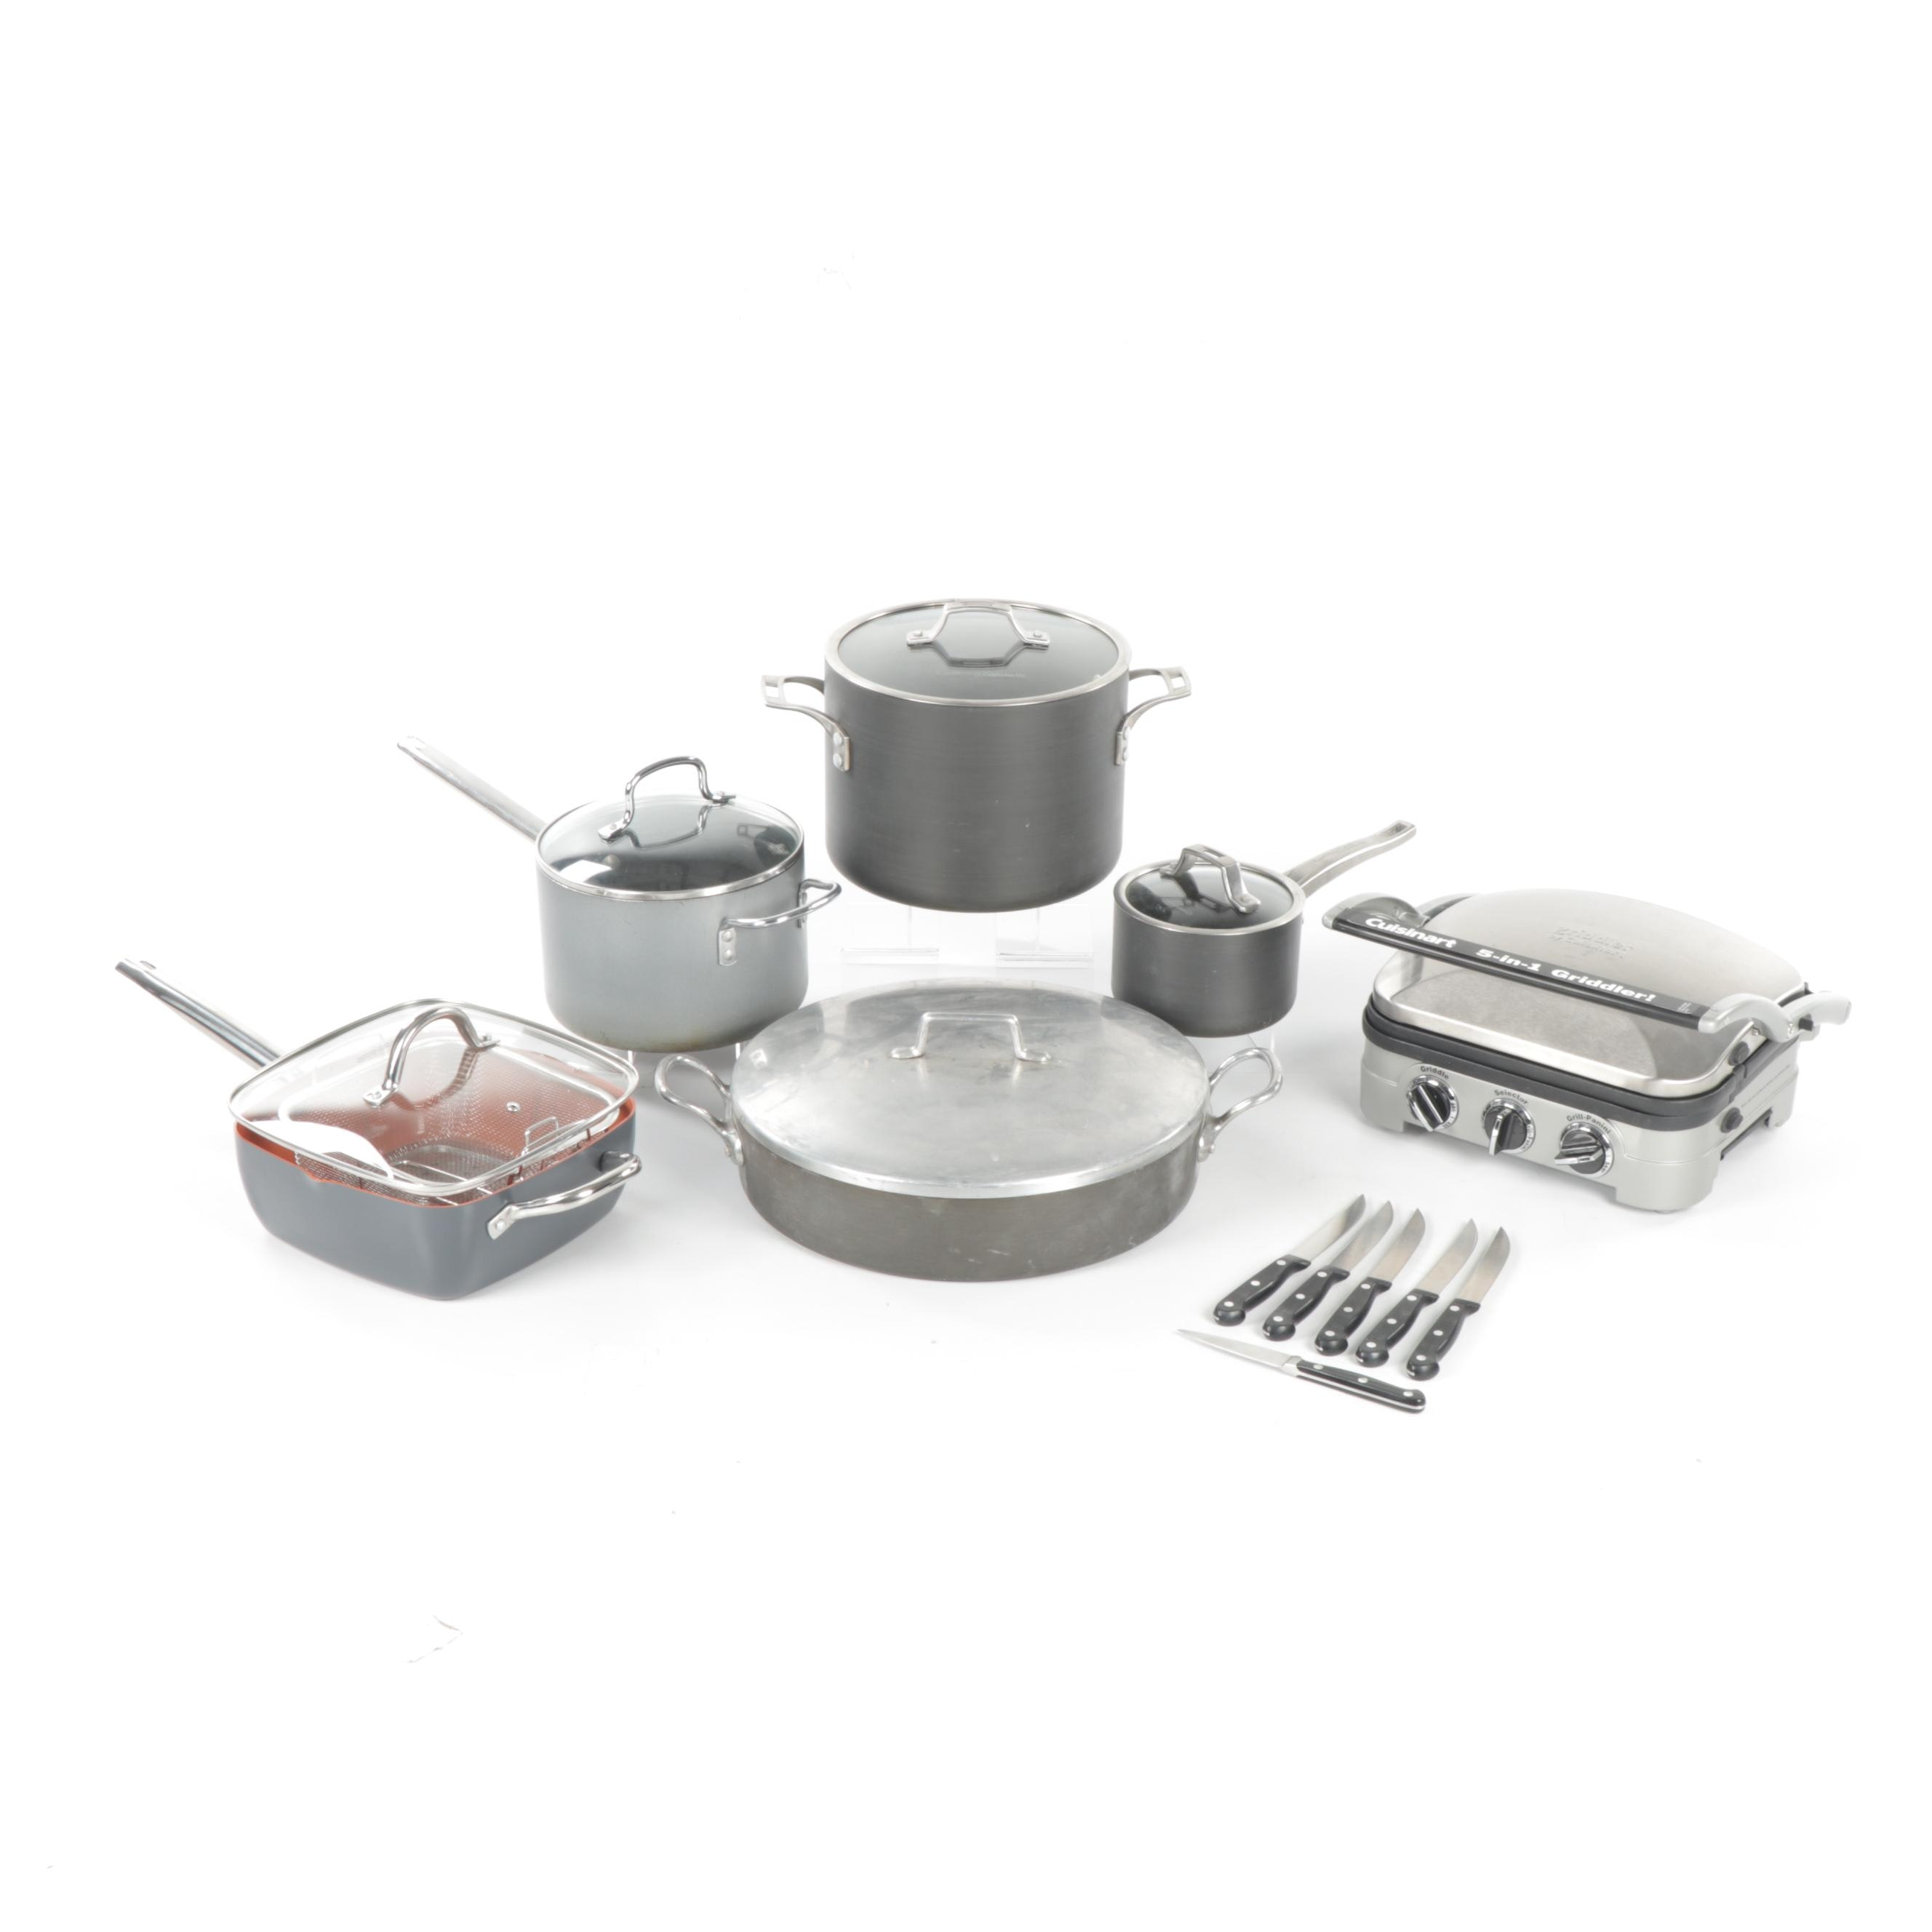 Collection of Cookware and Cutlery with Cuisinart, Wüsthof and More